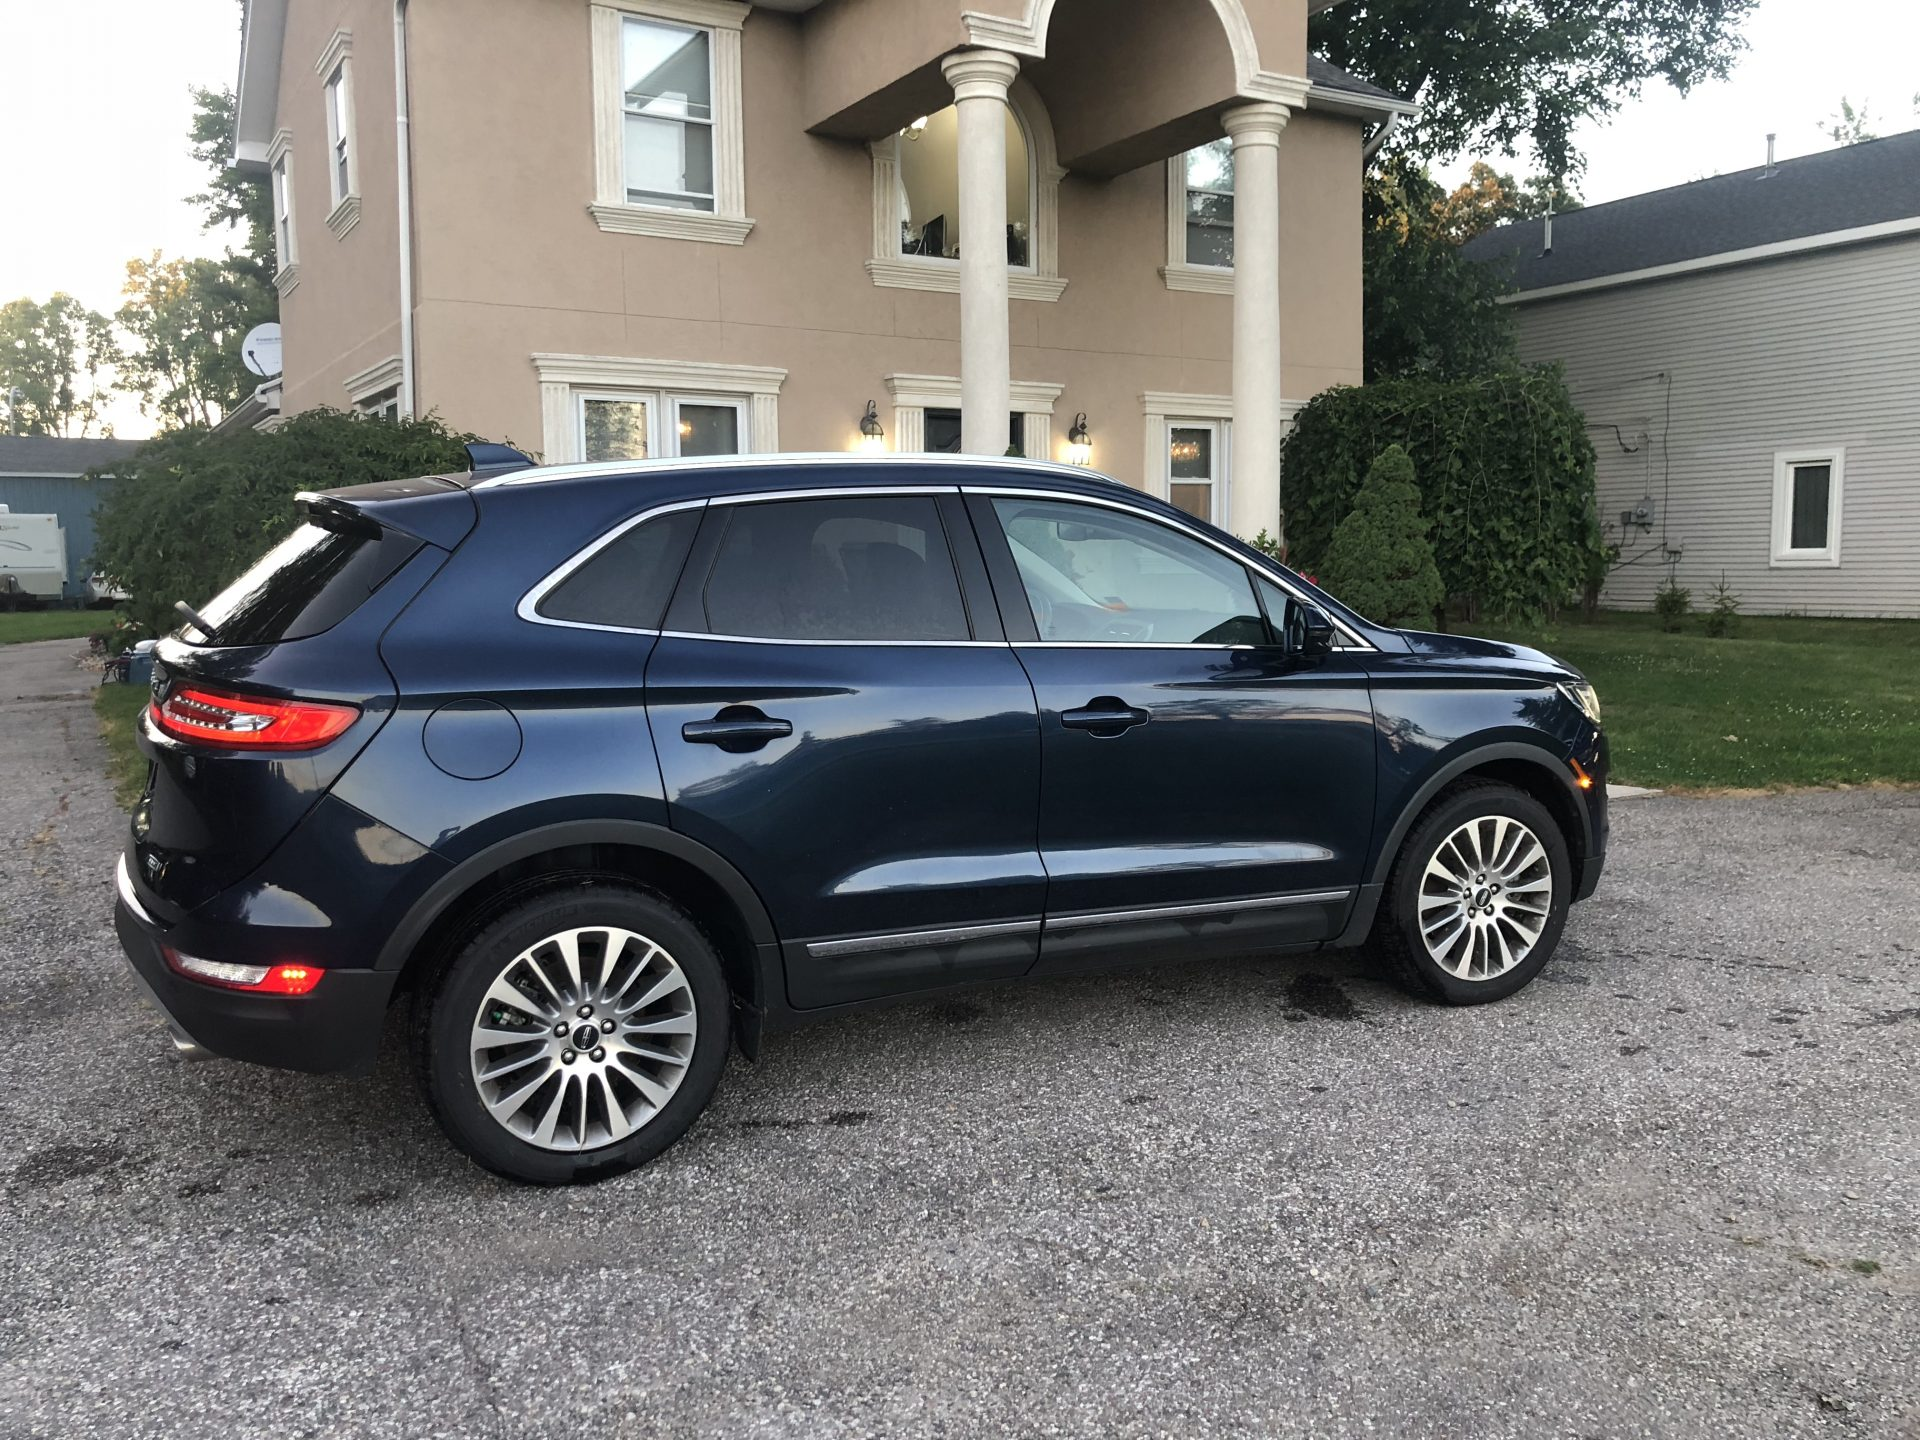 2017 LINCOLN MKC RESERVE AWD - Buds Auto - Used Cars for ...